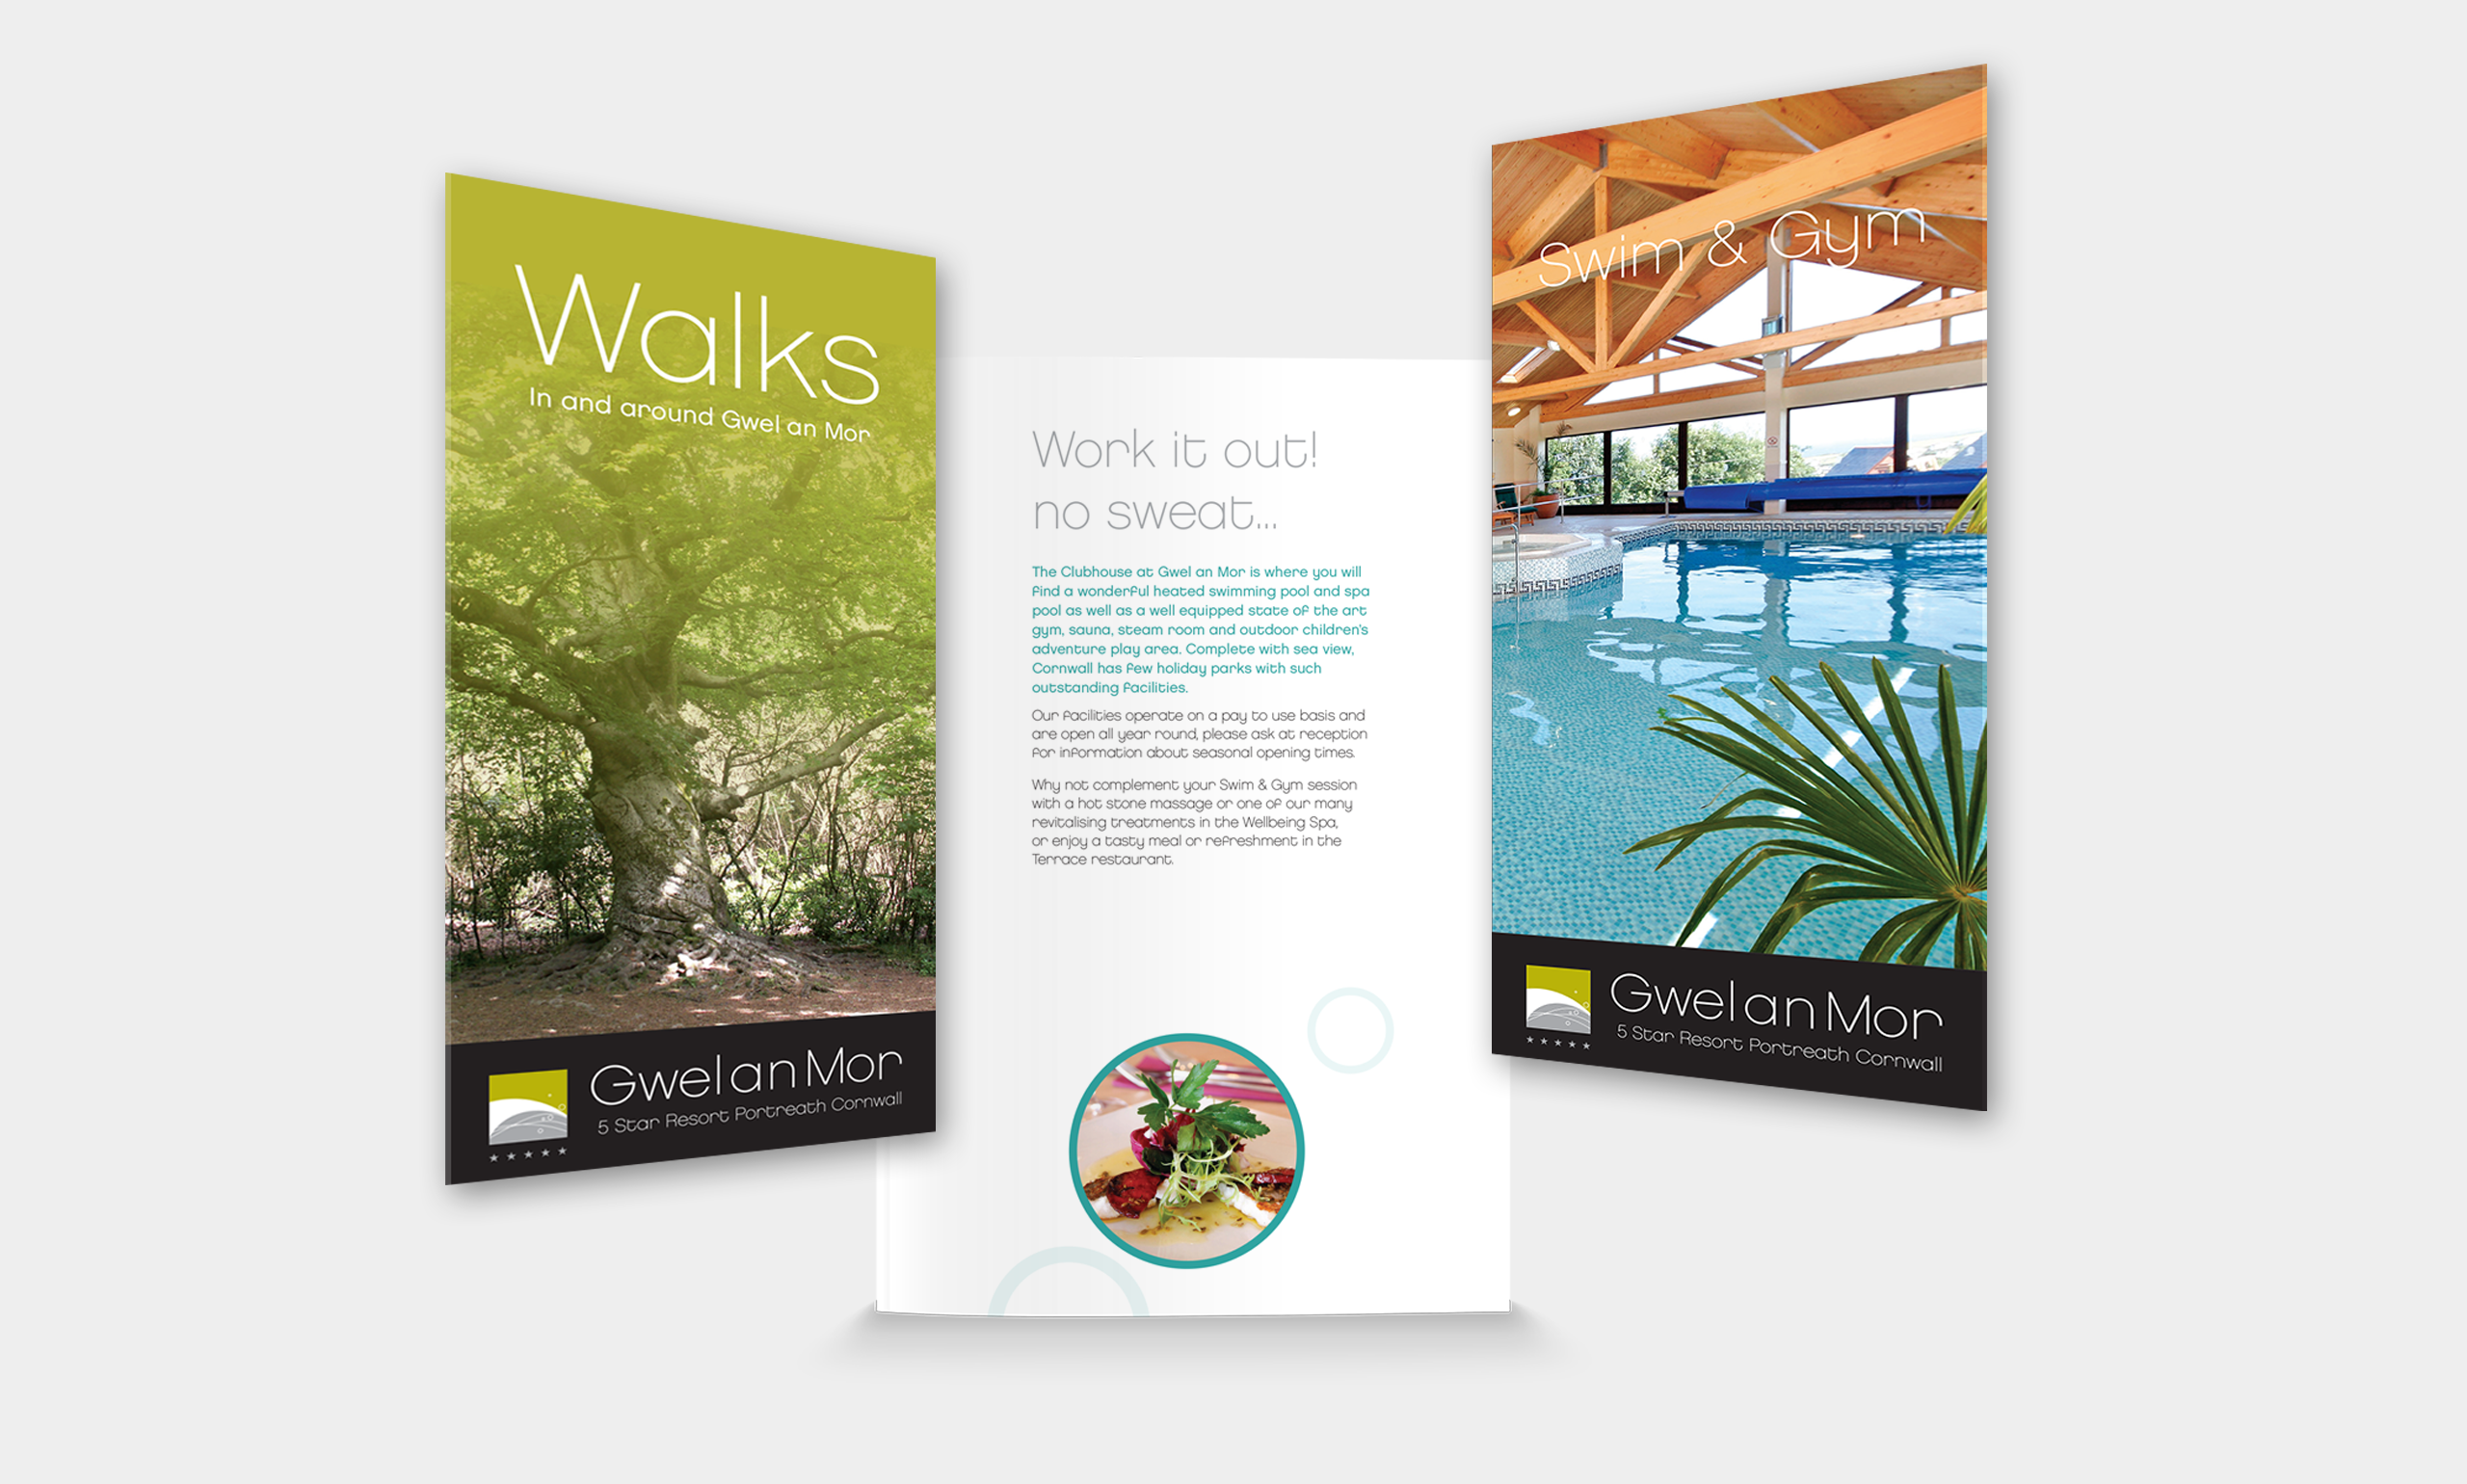 print design and promotional materials promoting walks and gym facilities at gwel an mor resort